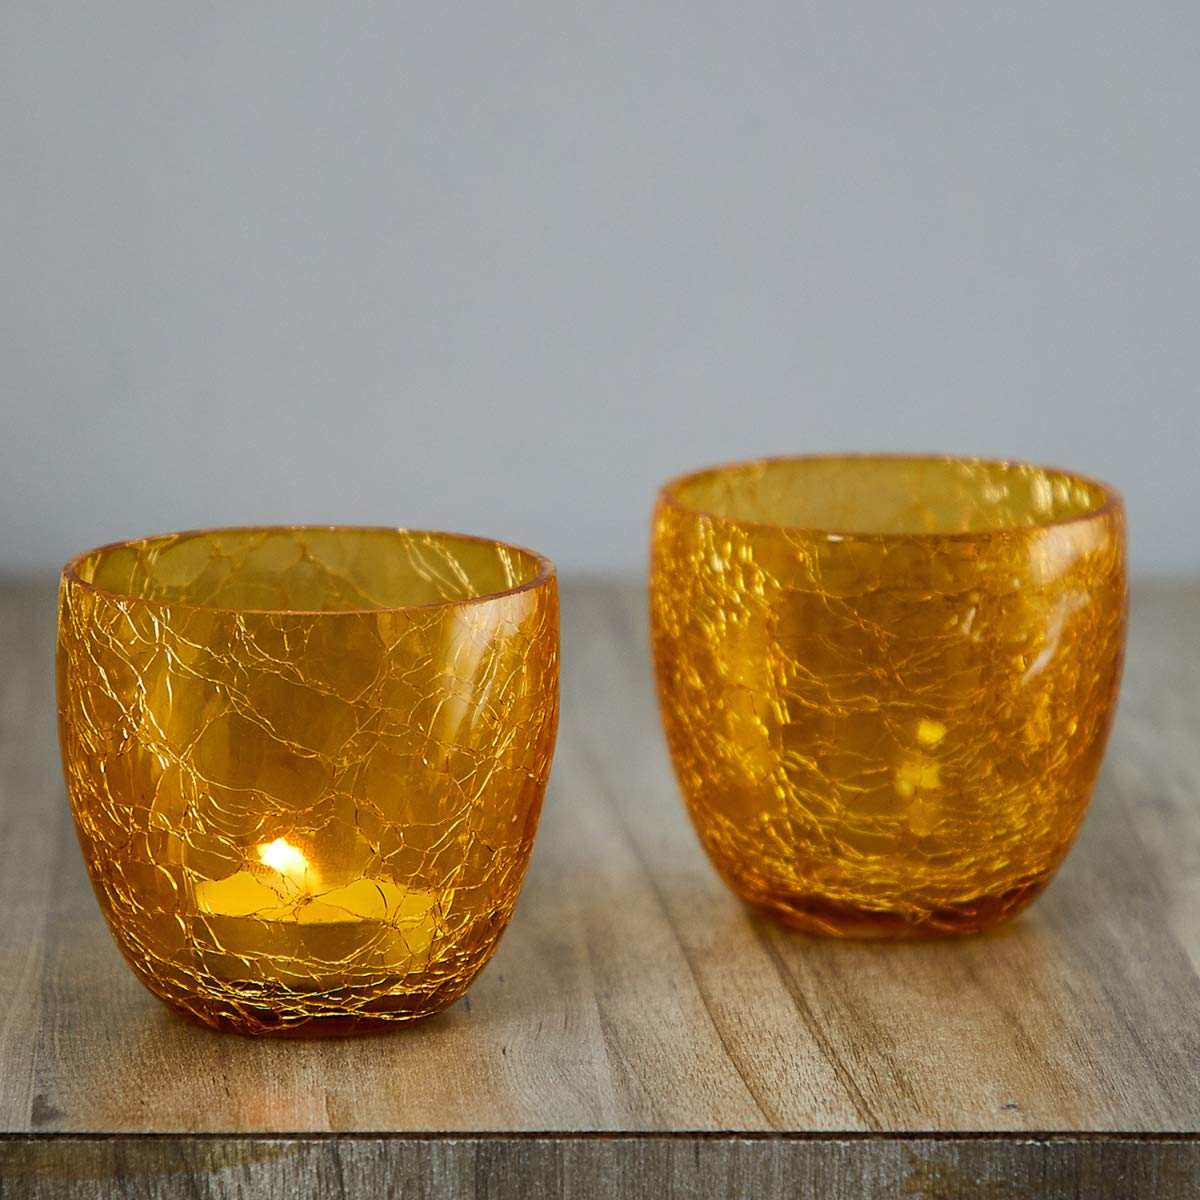 Buy Home Centre Helios Crackle Votive Holder Set Of 2 Online At Low Prices In India Amazon In